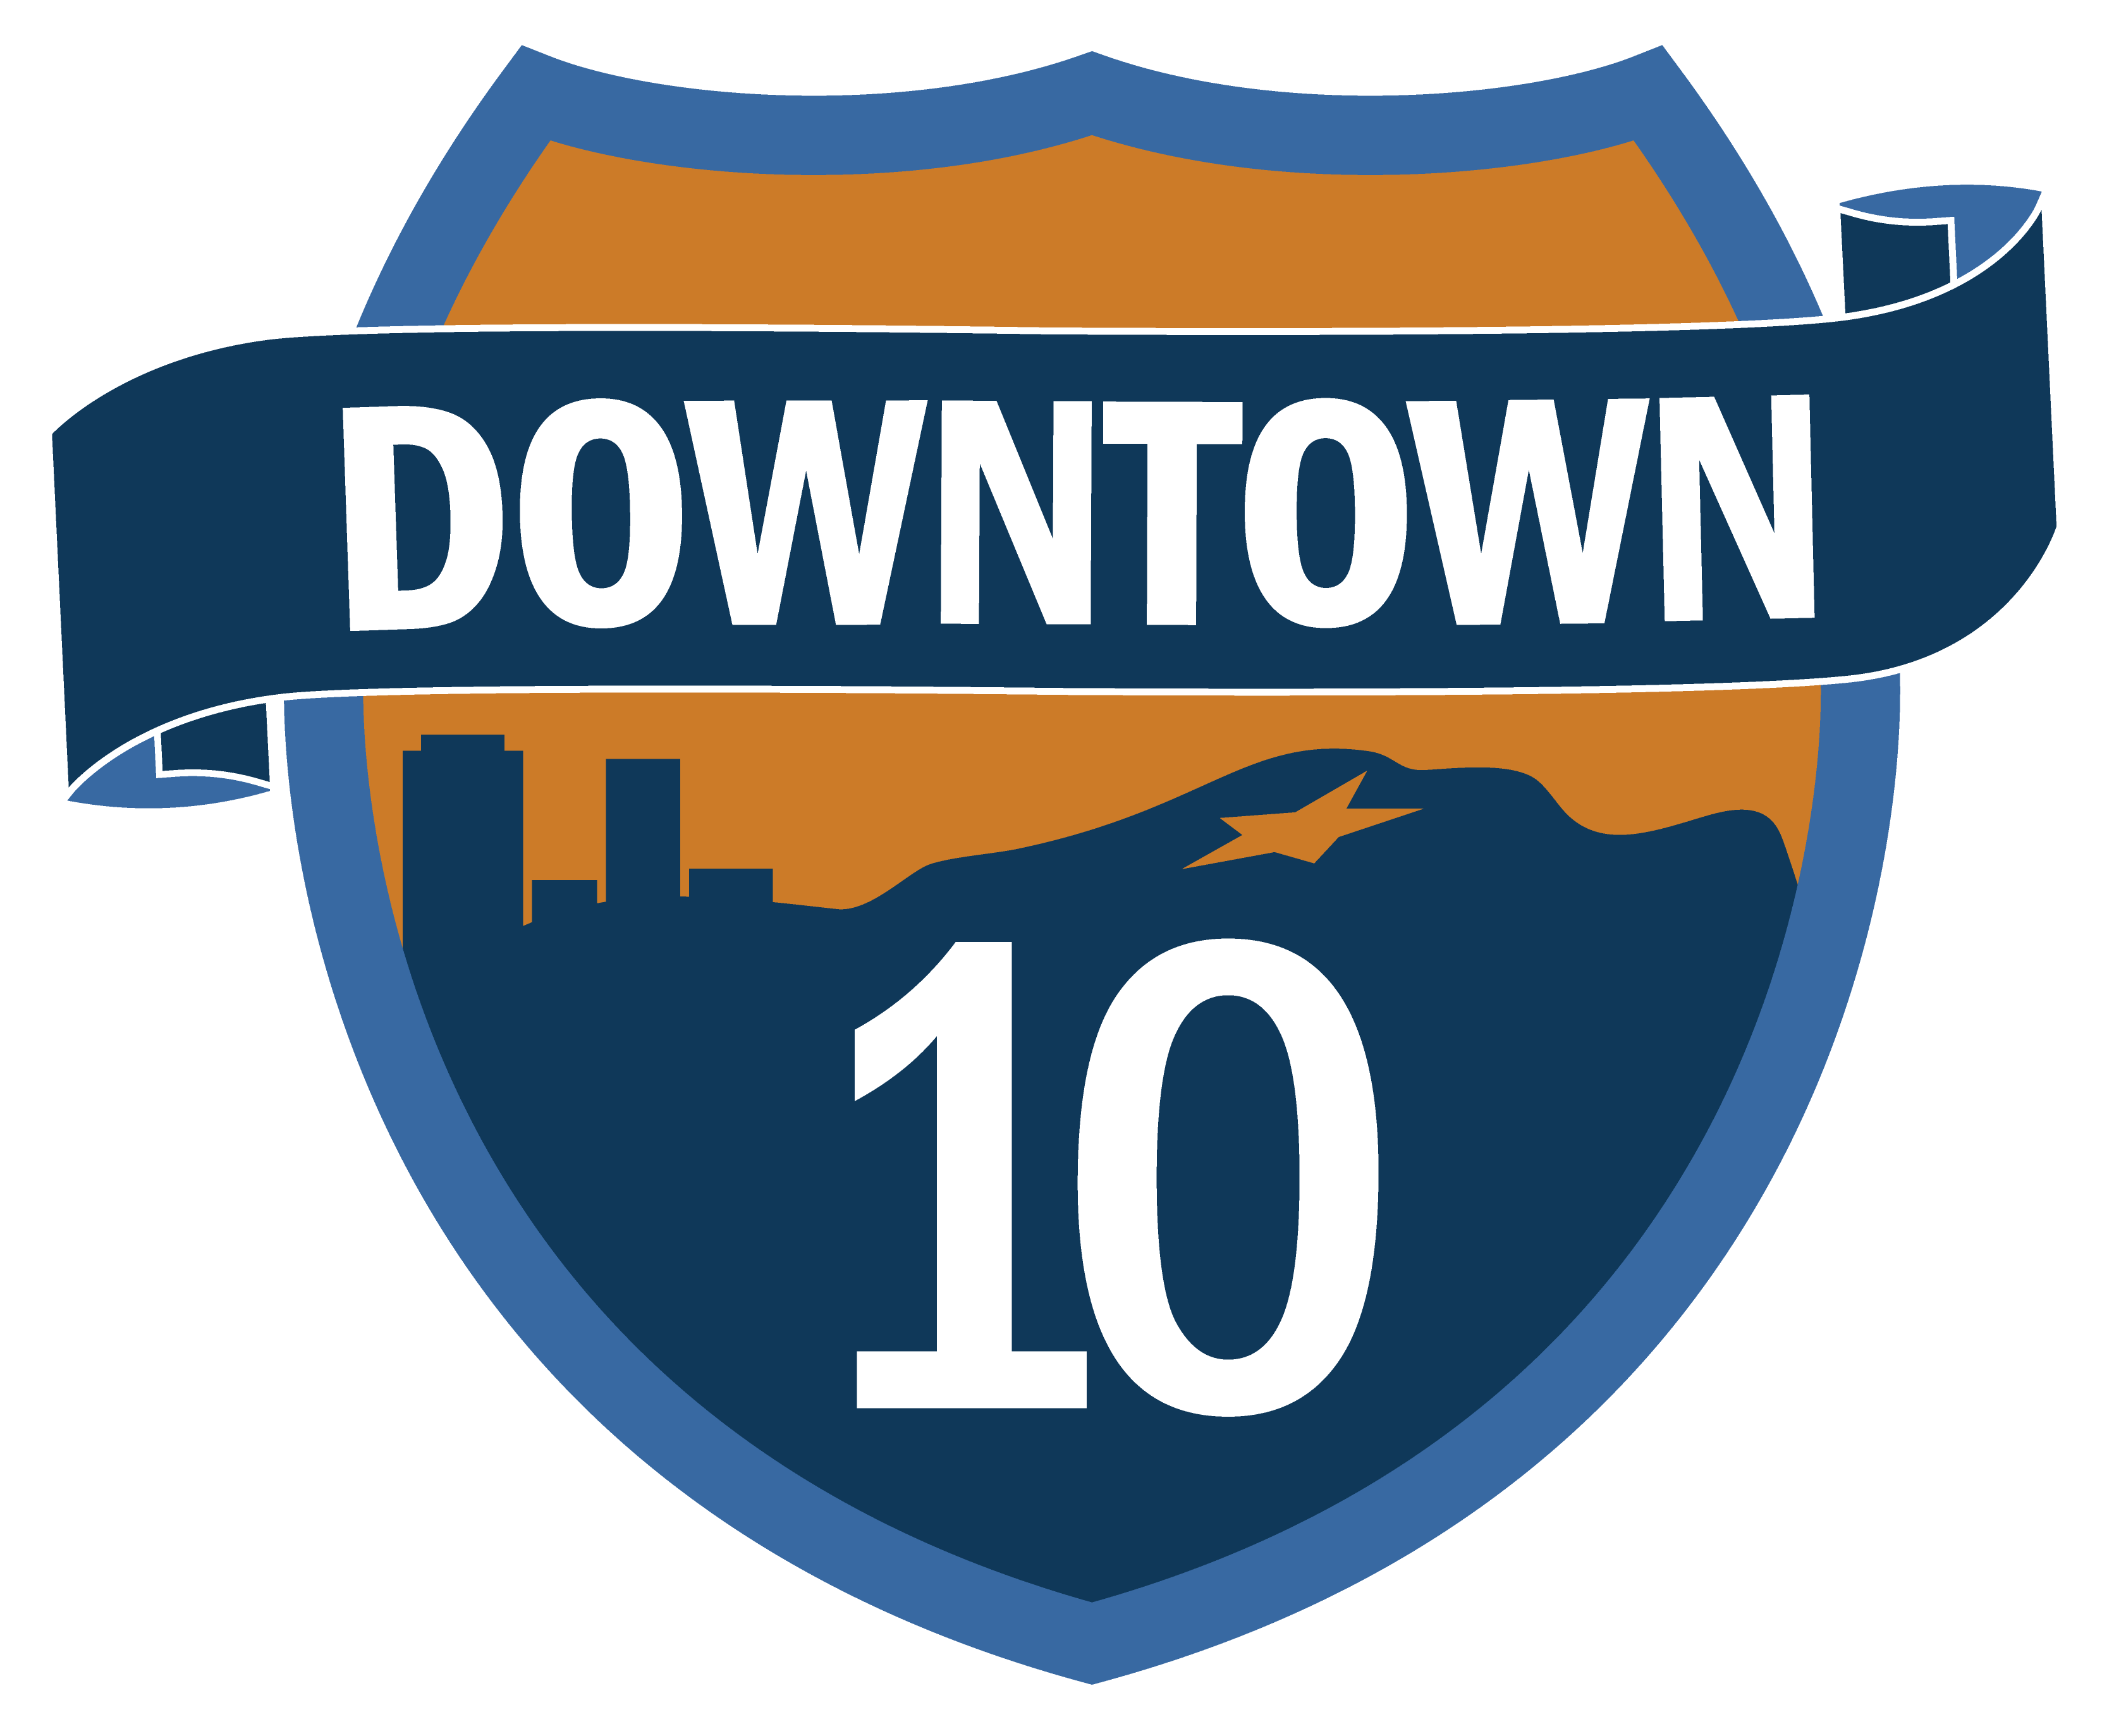 Downtown 10 Project logo